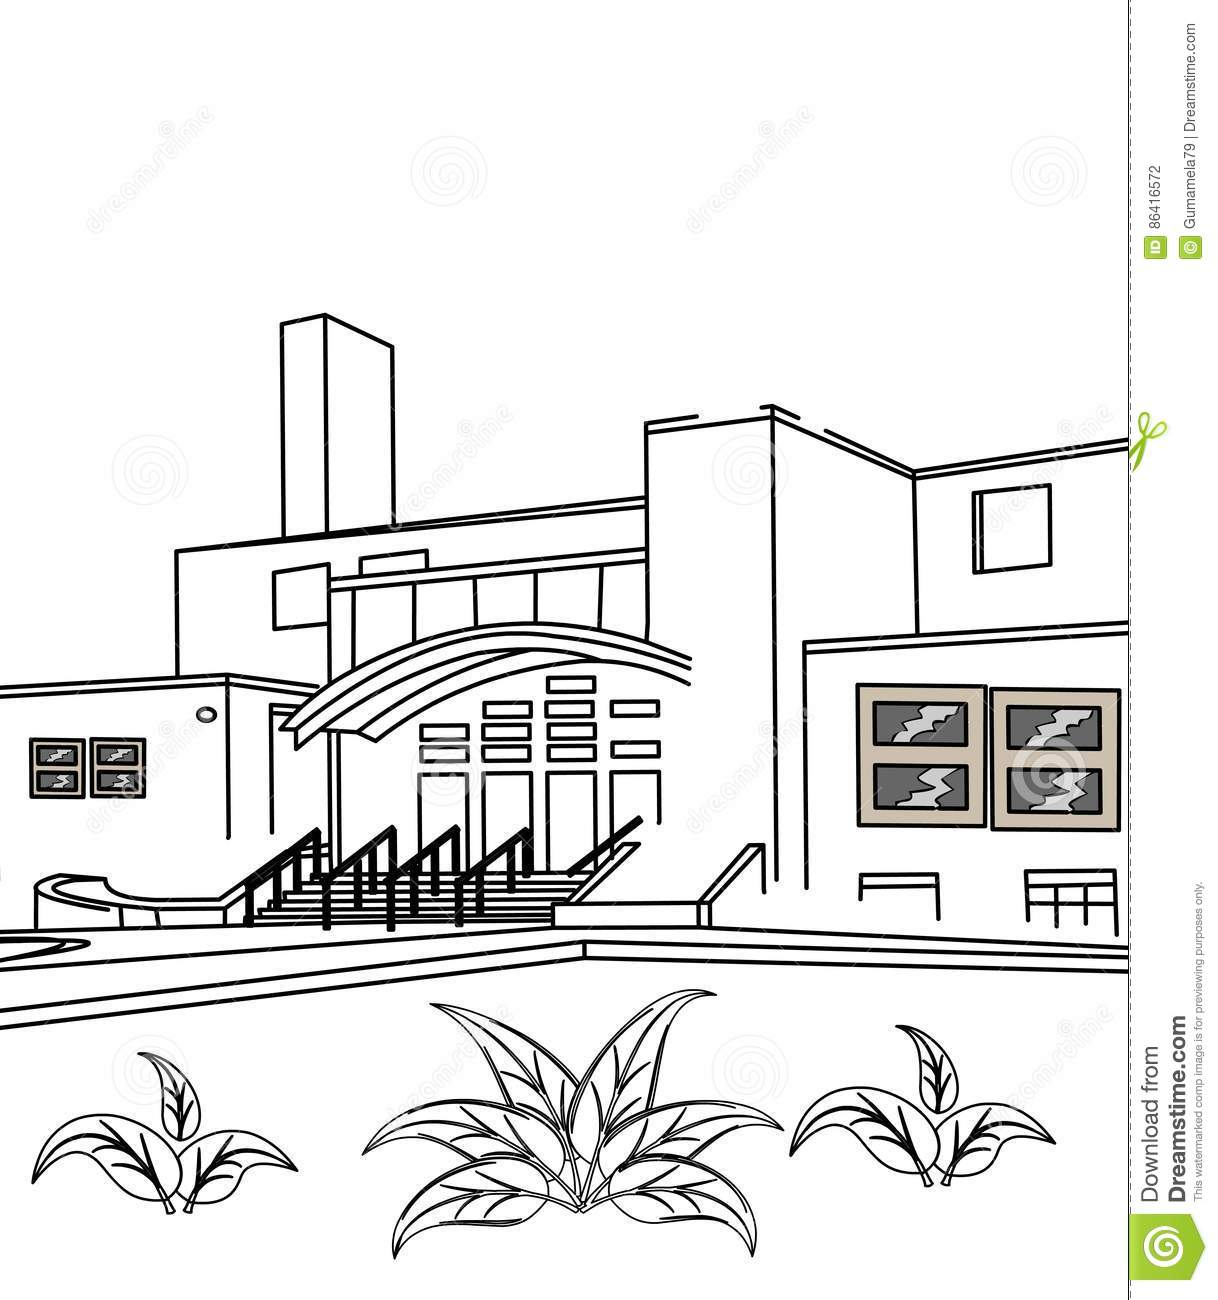 Exterior Building Coloring Page Stock Illustration - Illustration of ...